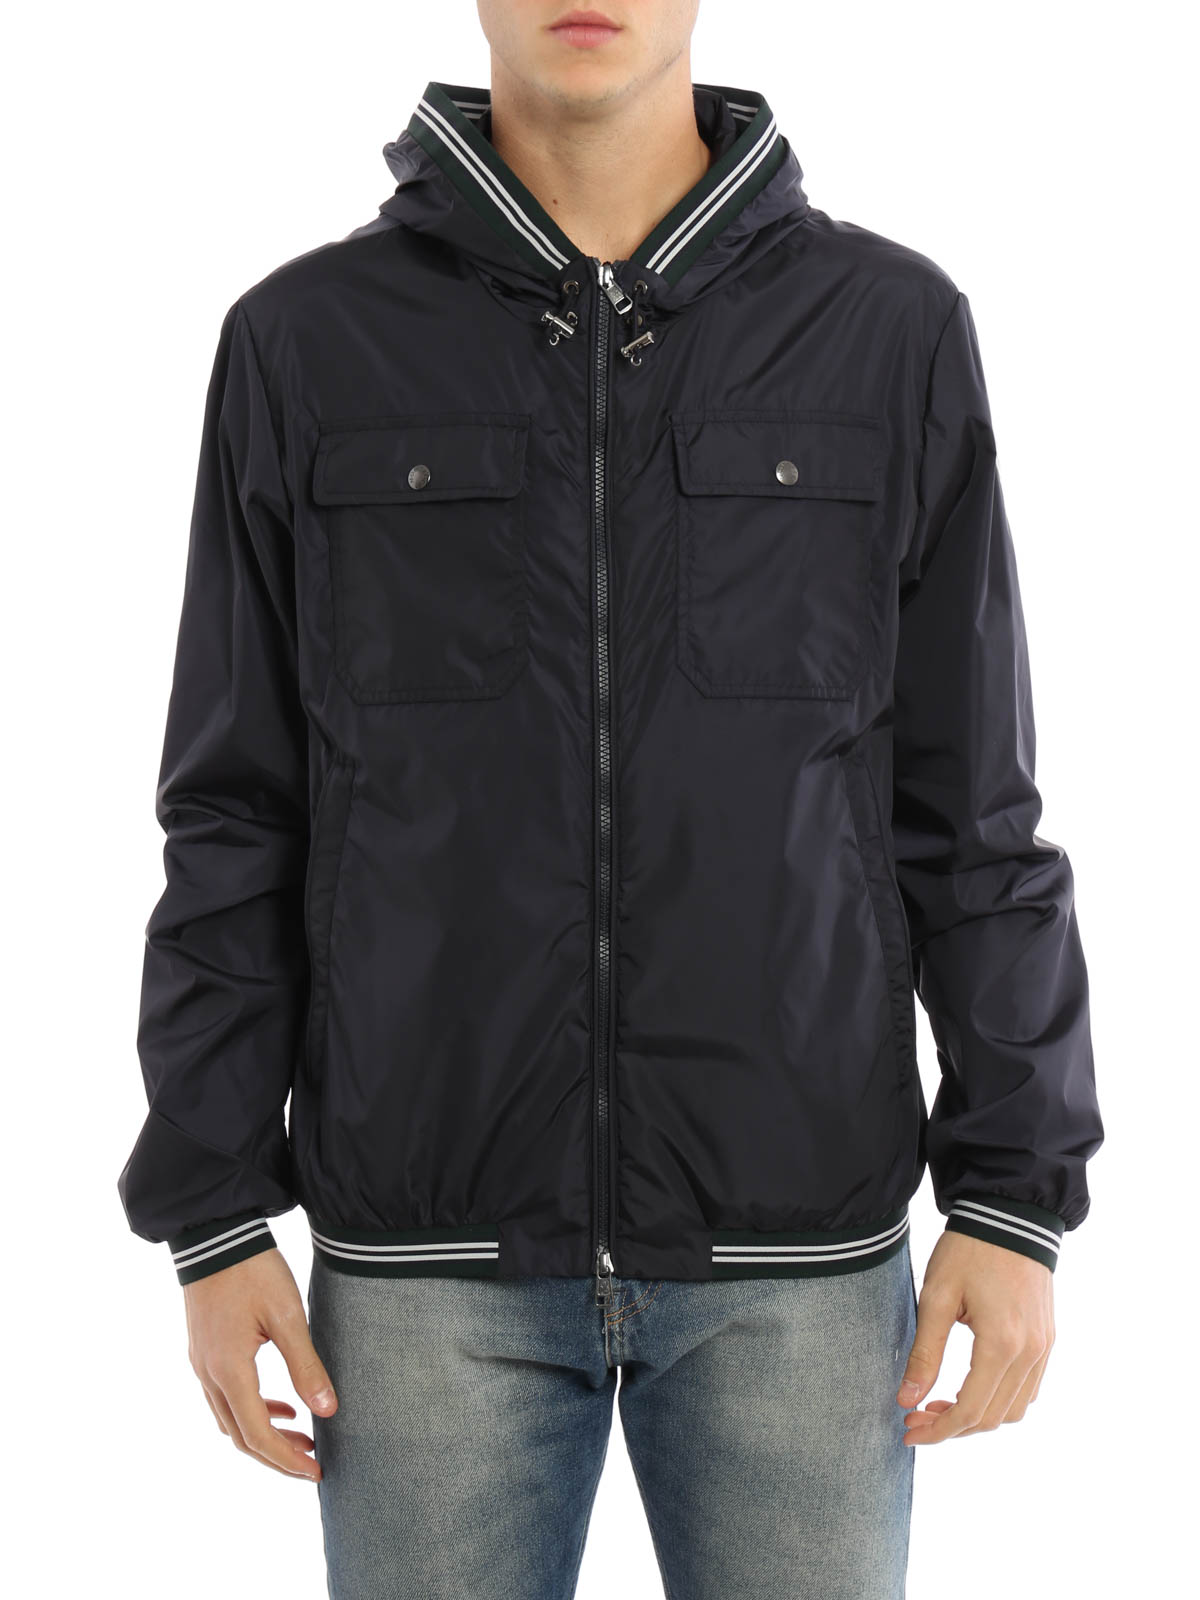 5db85a6a3 Moncler - Jeanclaude hooded nylon jacket - casual jackets - C1 091 ...